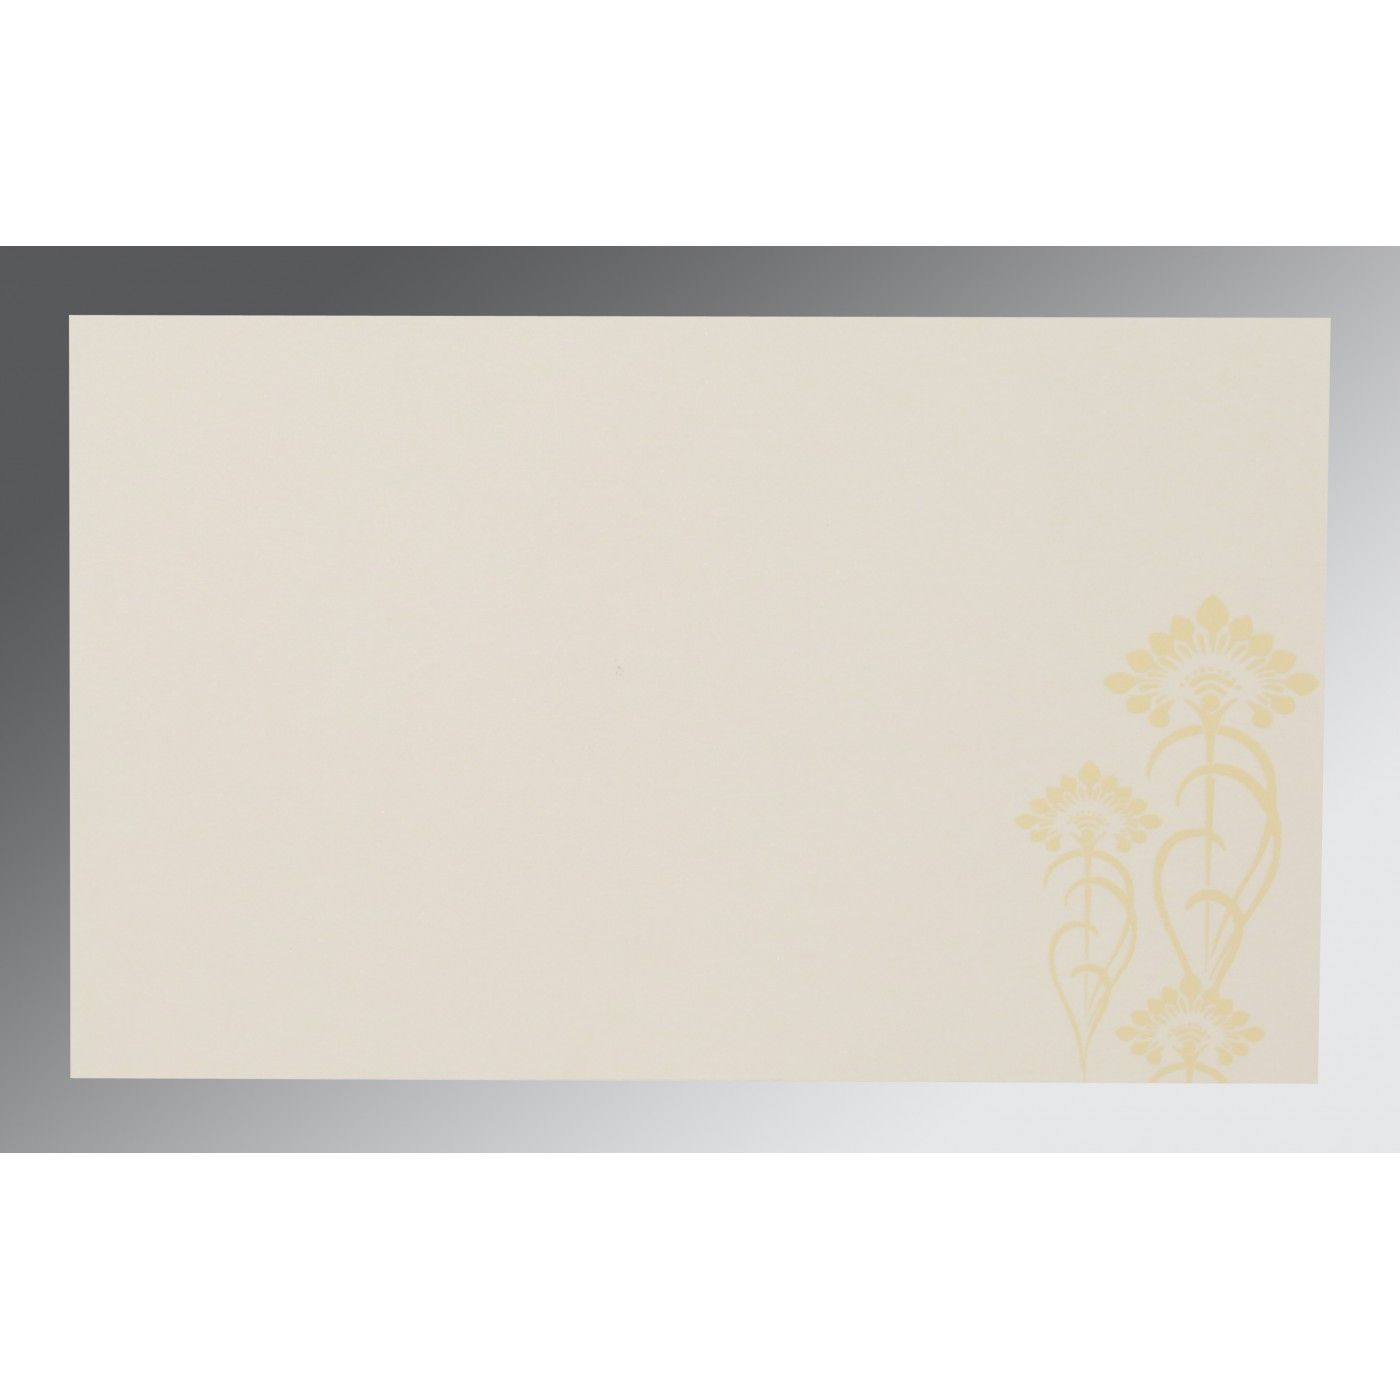 CREAM SHIMMERY SCREEN PRINTED WEDDING CARD : CS-8239I - IndianWeddingCards